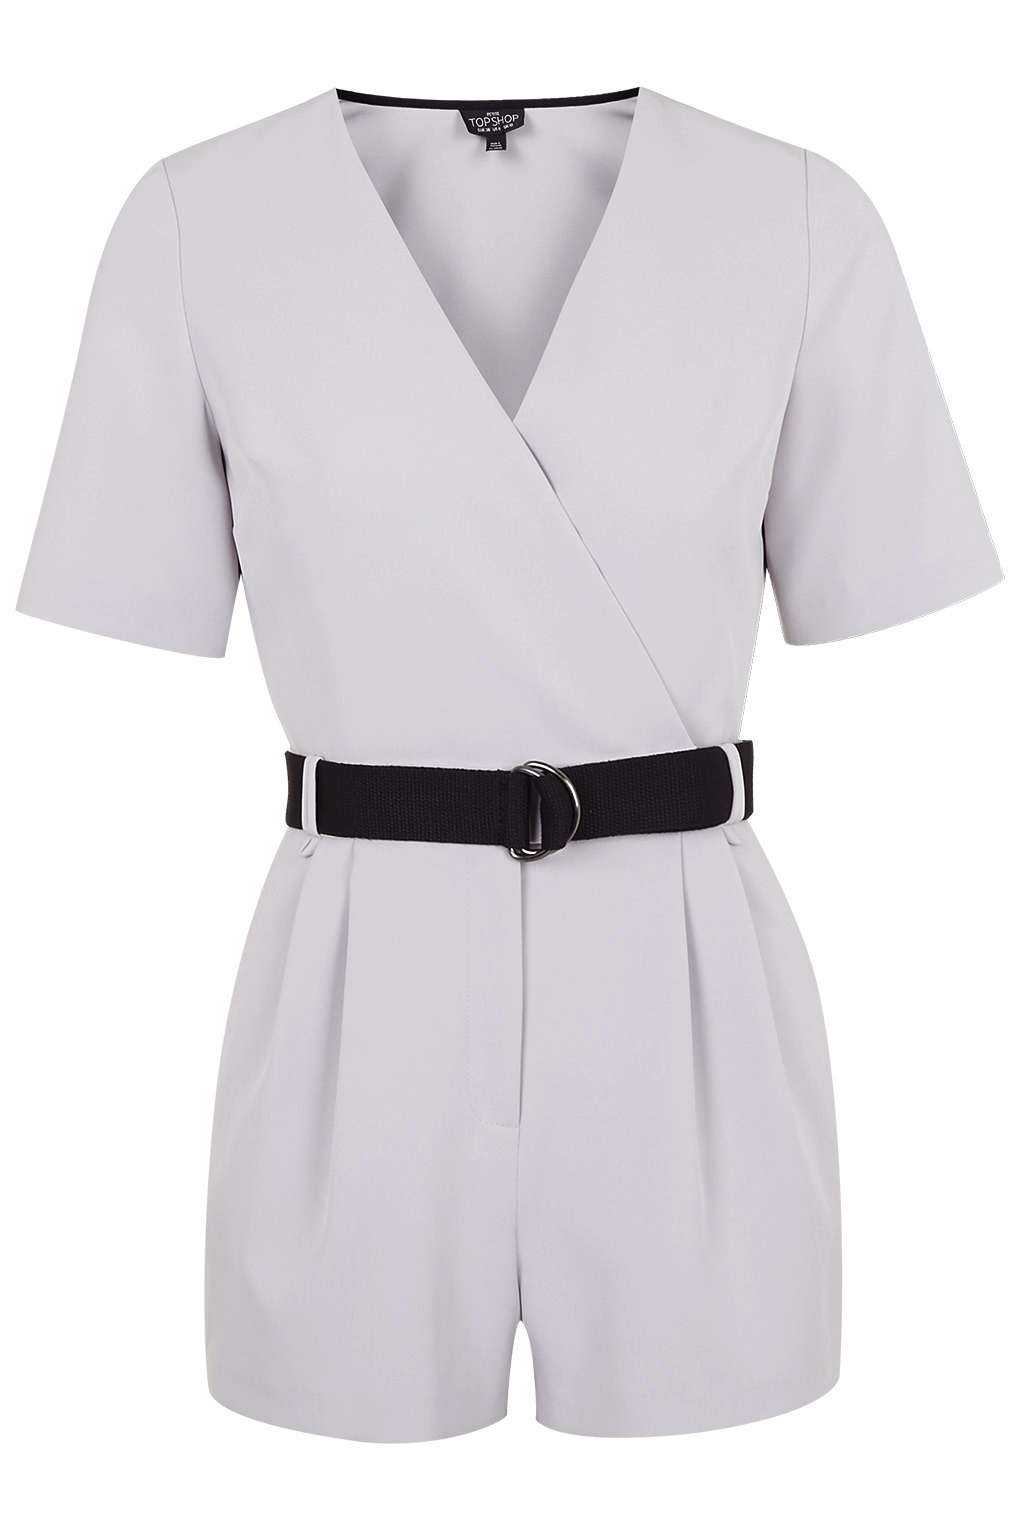 c3a2a902c81 TOPSHOP Petite Judo Wrap Playsuit in White - Lyst